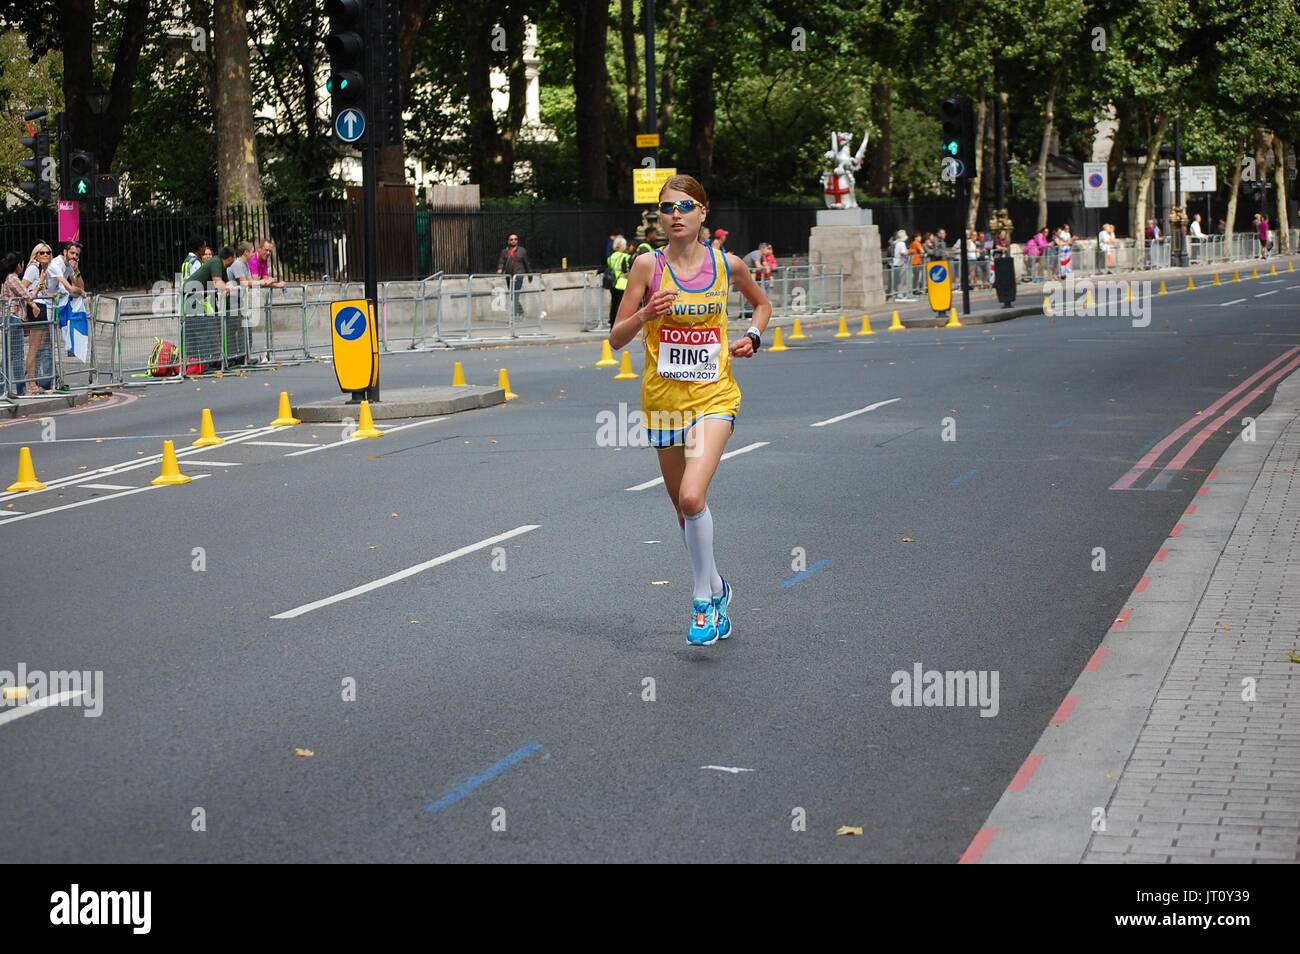 London, UK. 06th Aug, 2017. IAAF World Championships 2017 London Women's Marathon Ring Credit: Justas Balciunas/Alamy Live News - Stock Image